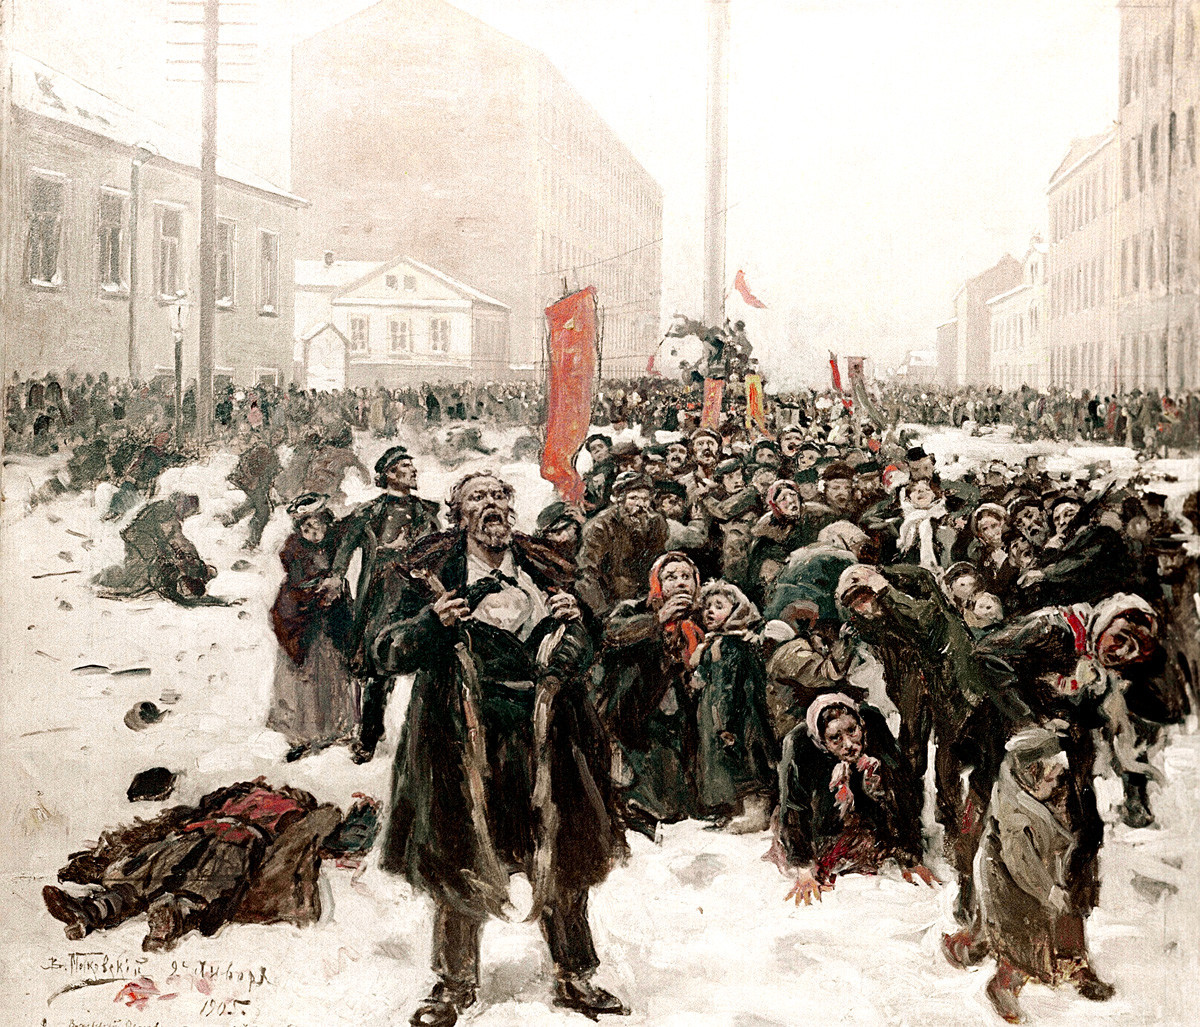 Vladimir Makovsky. The 9th of January 1905